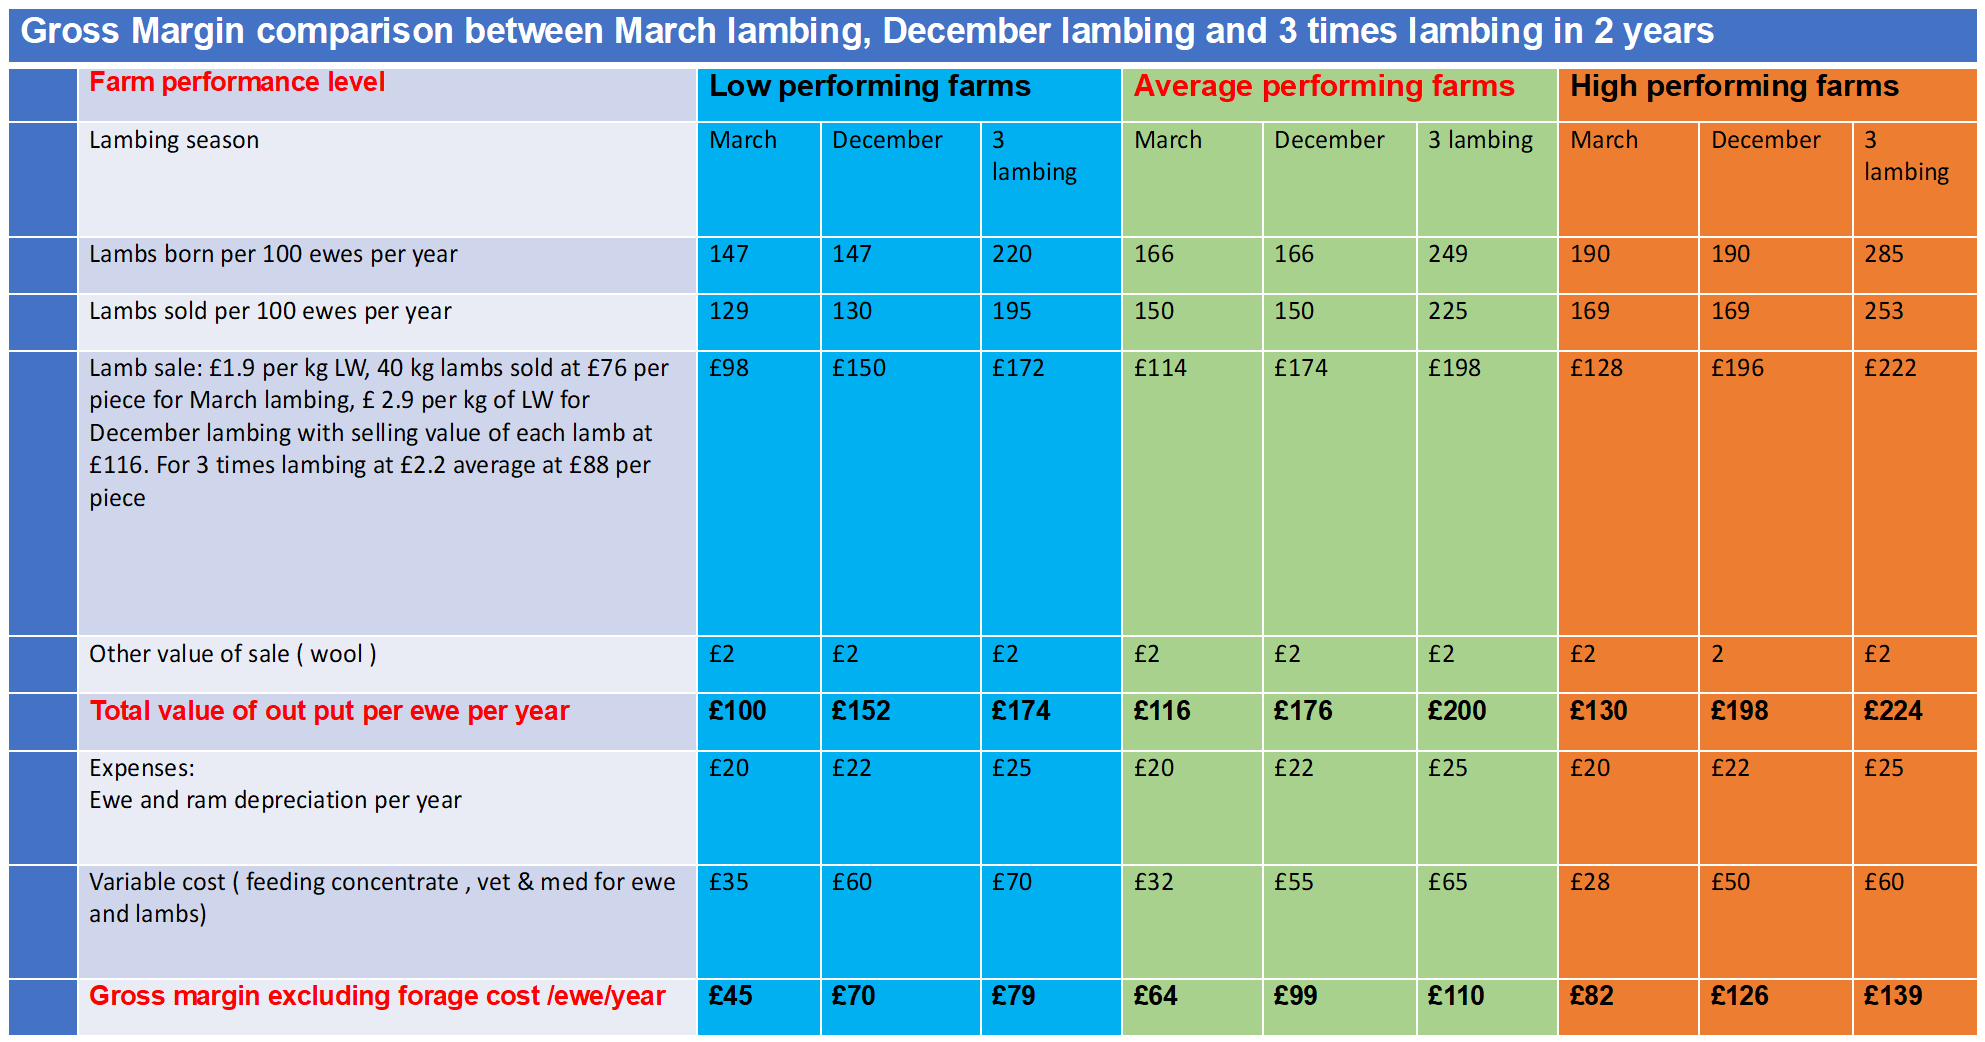 Lambing Time Gross Margin Comparison